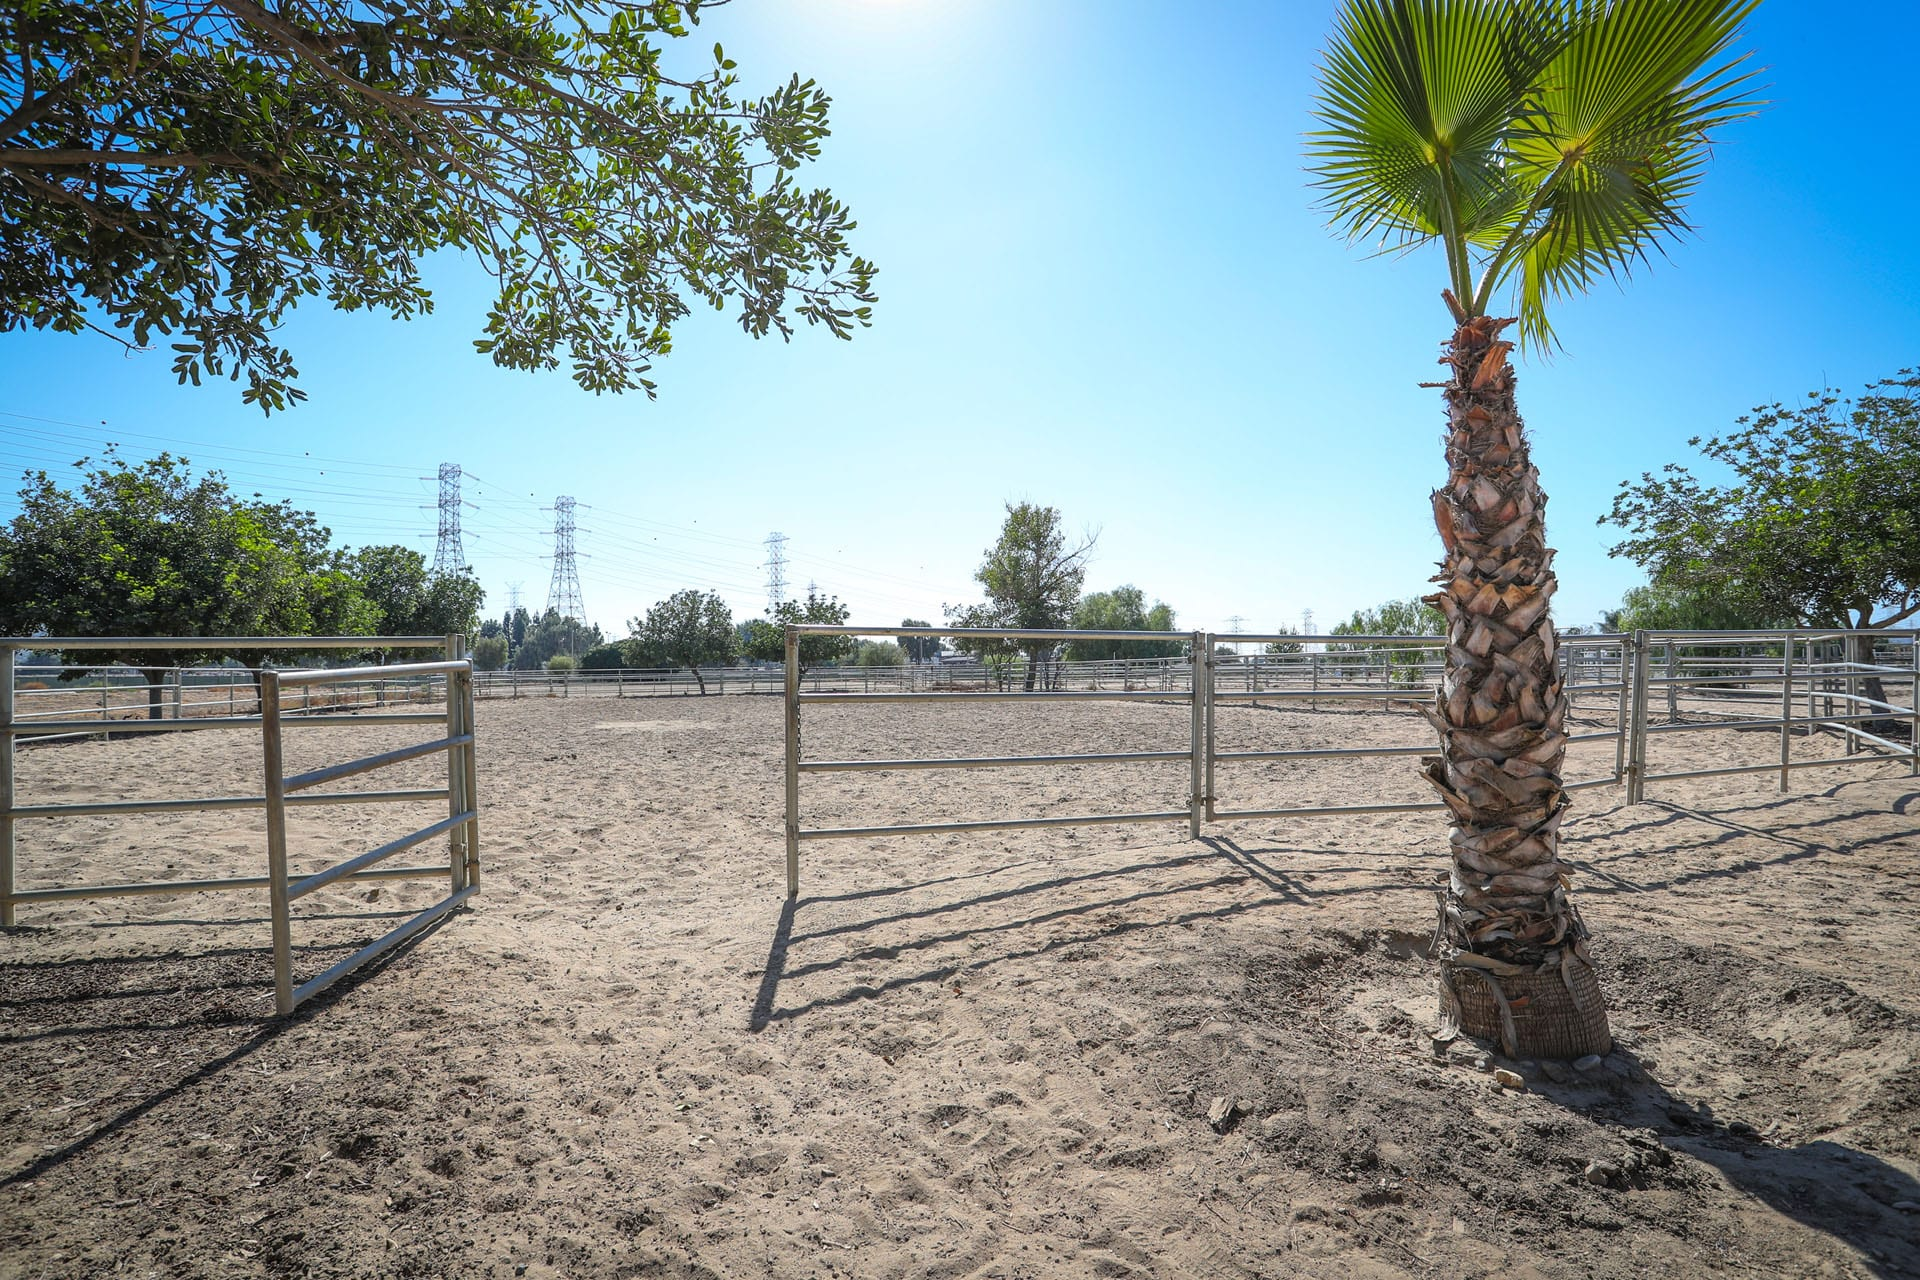 Gate to horse obstacle course